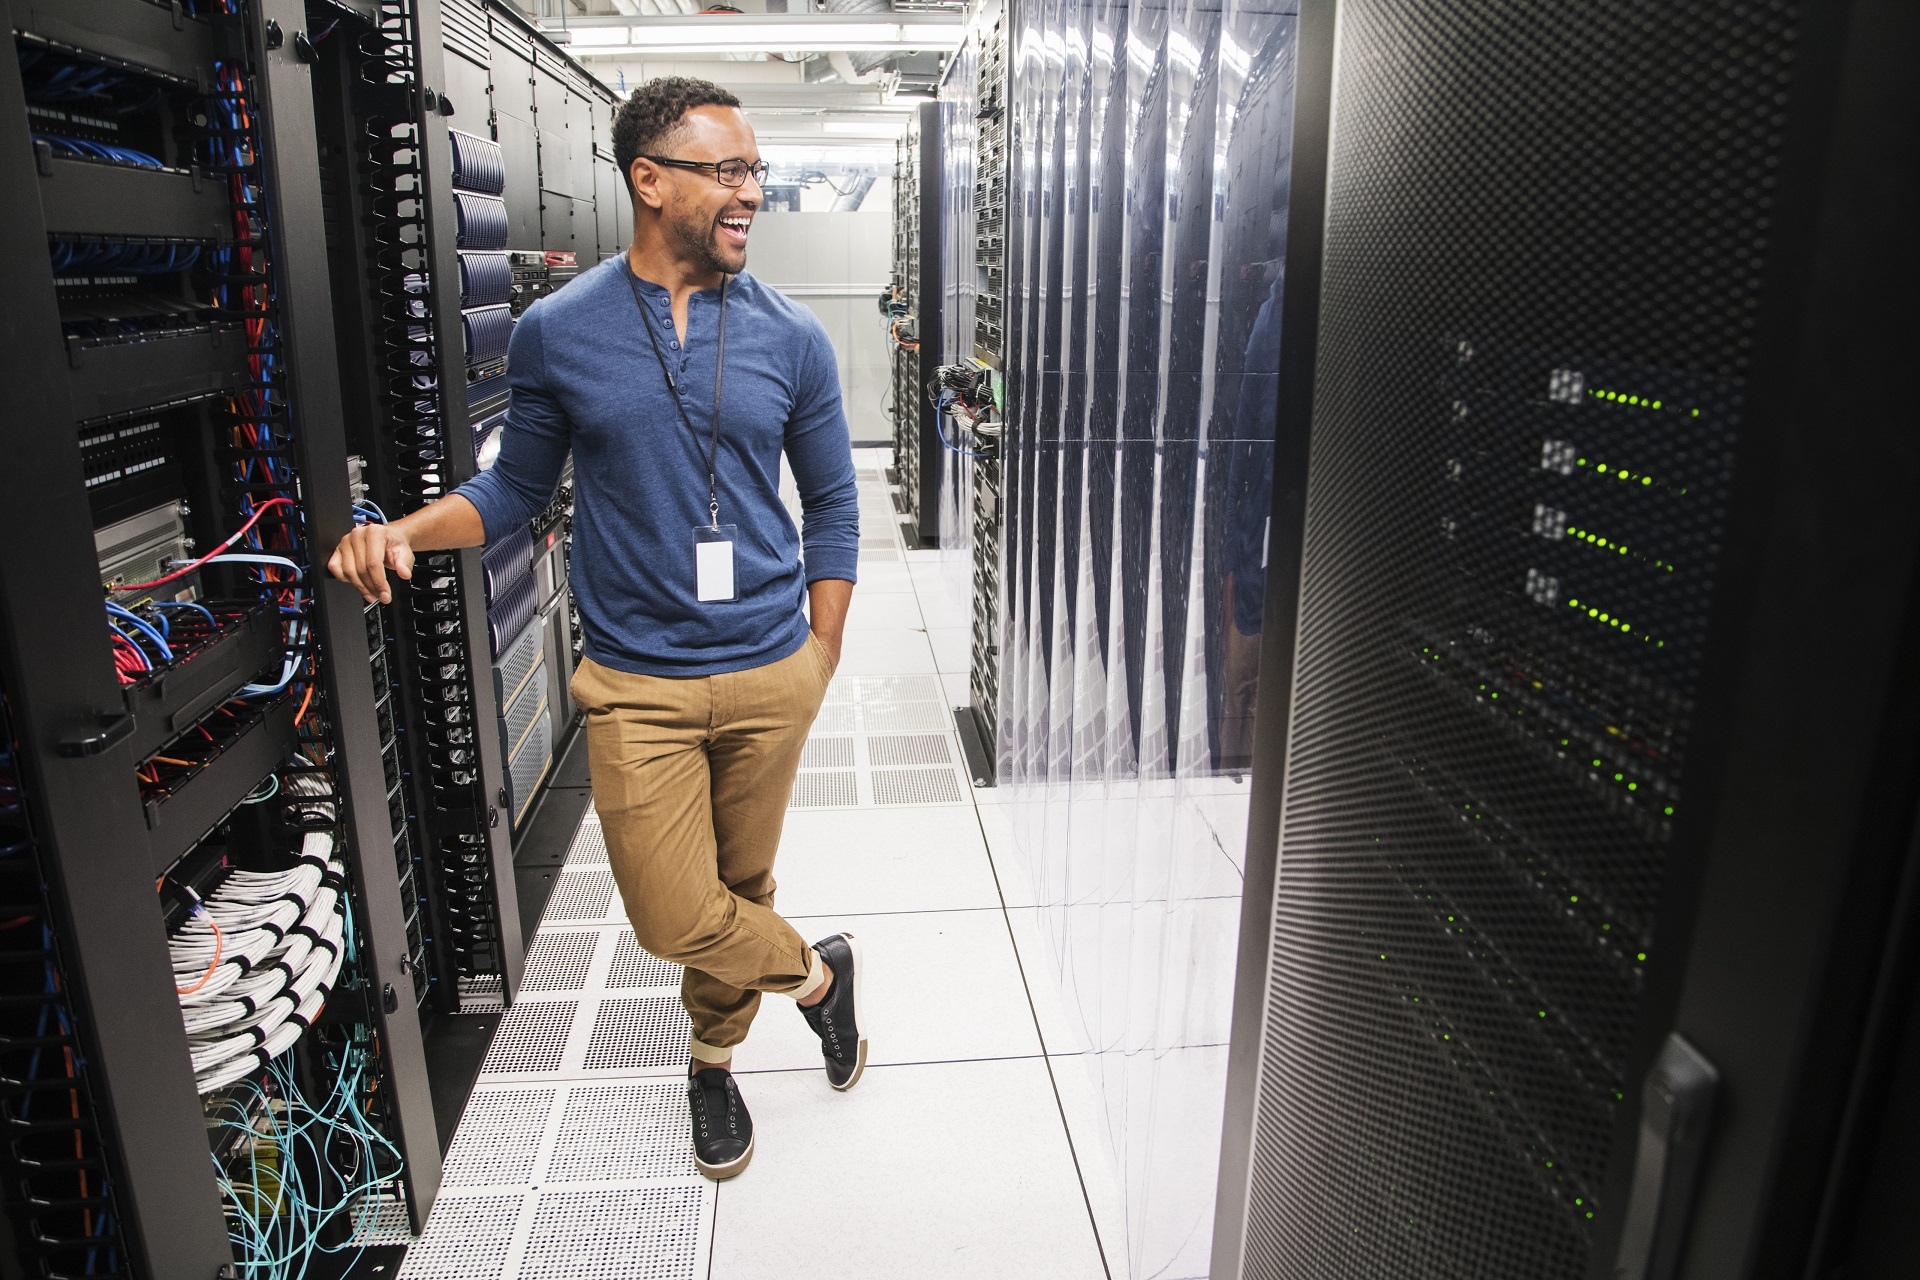 Man stood in server room